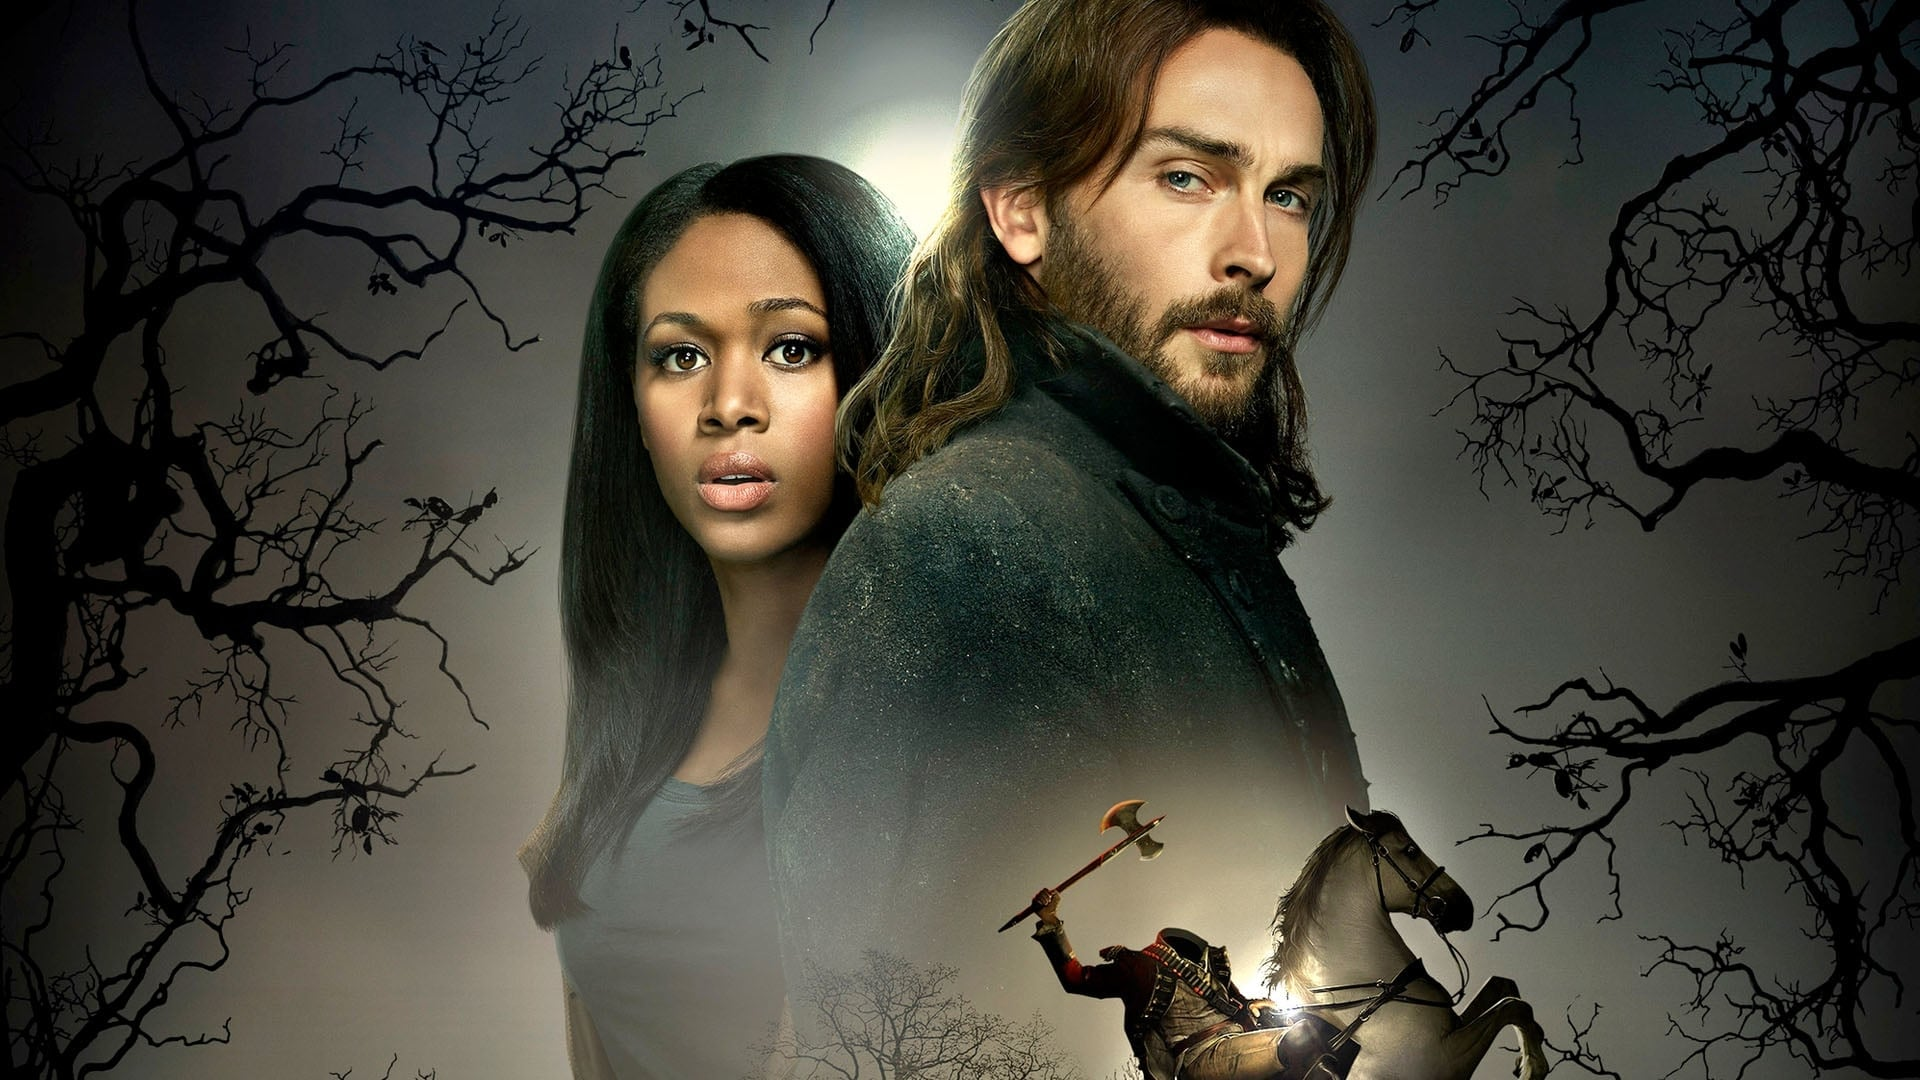 Fox announces premiere date Sleepy Hollow